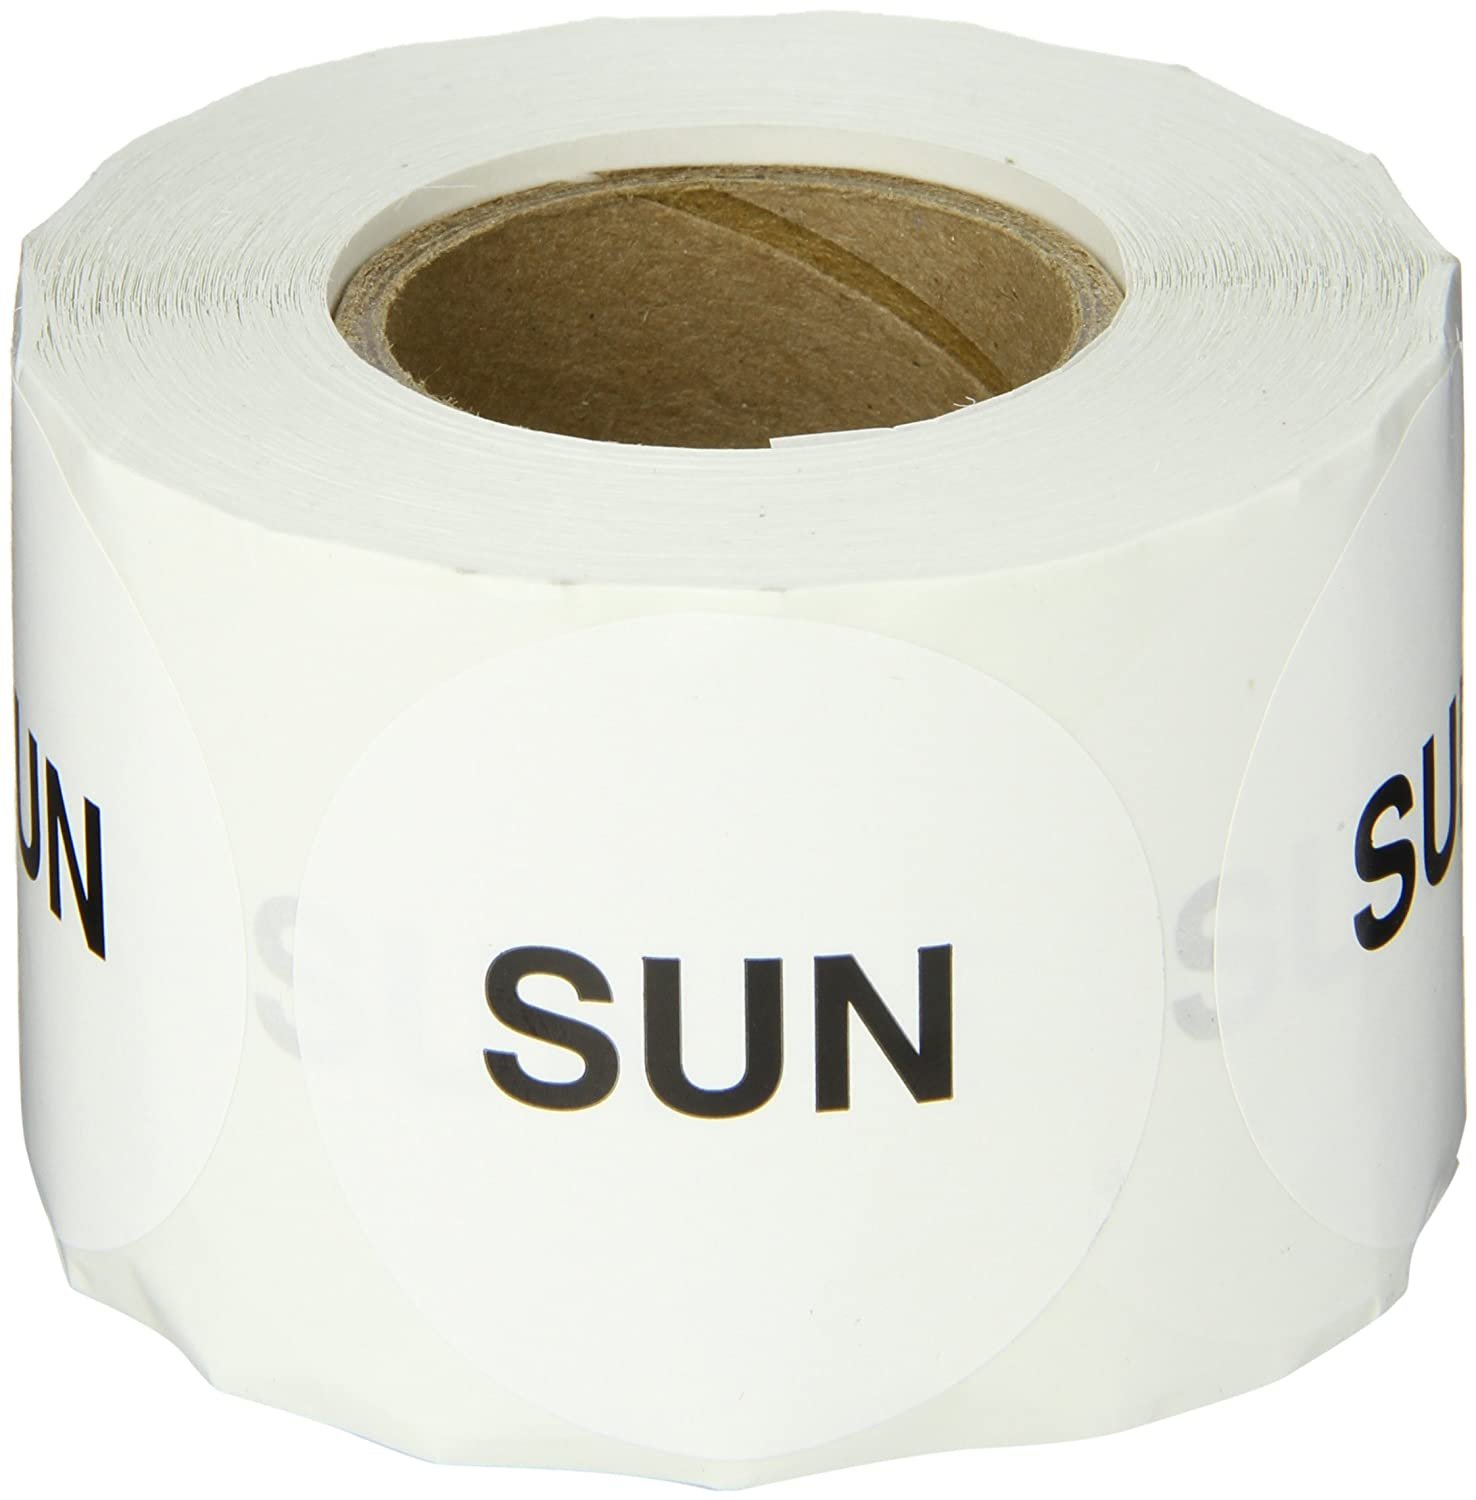 2 Diameter Roll of 500 LegendSun White Tape Logic DL6562 Pre-Printed Inventory Days of The Week Circle Label